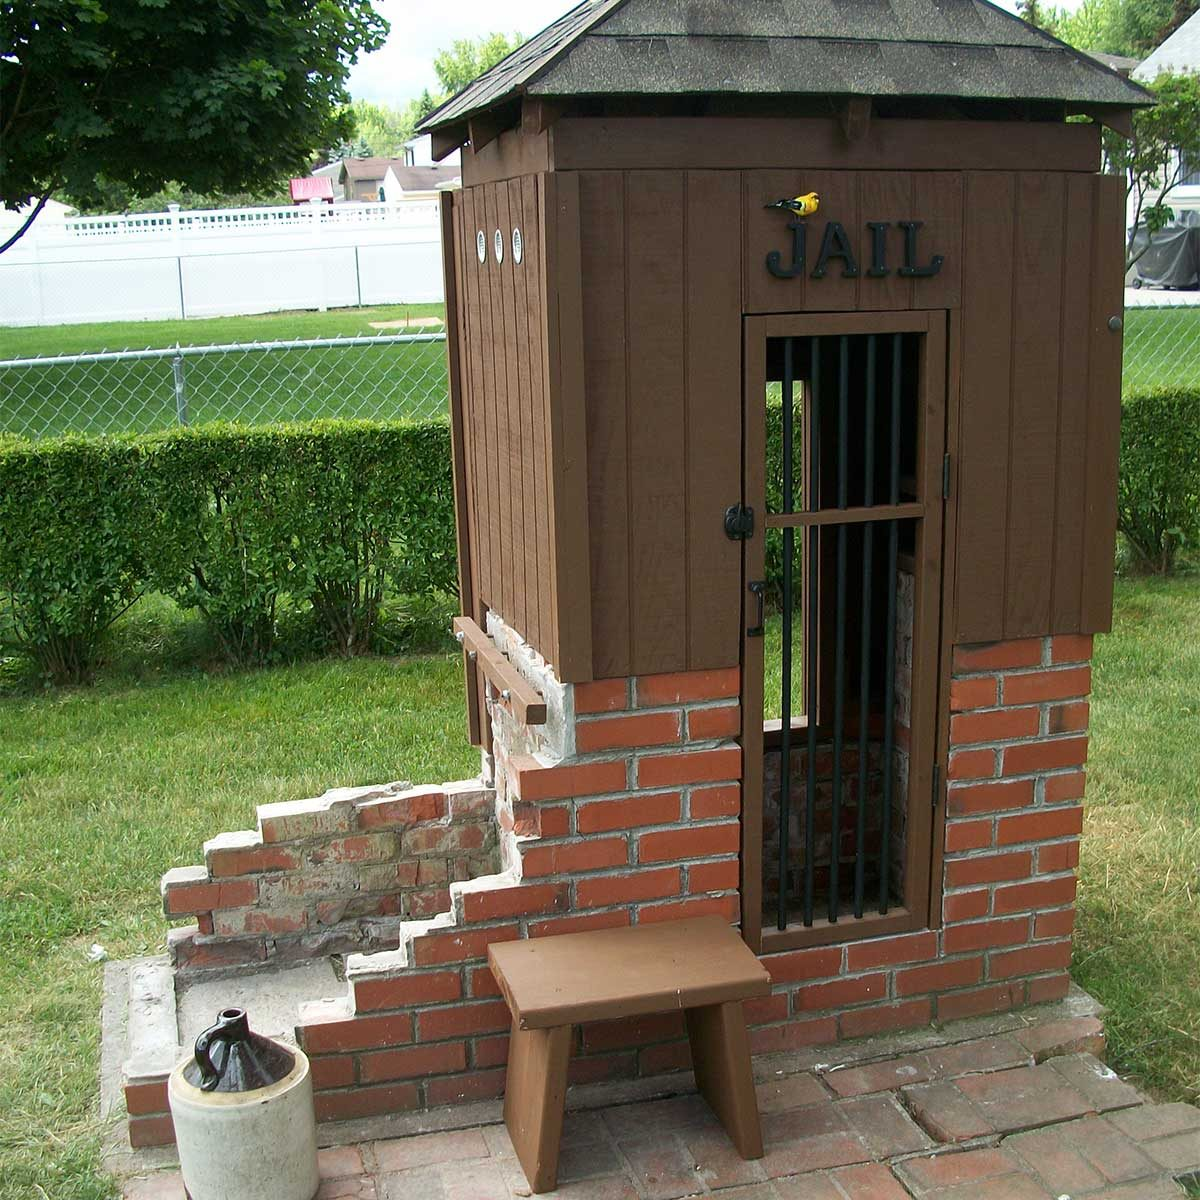 Jail Playhouse